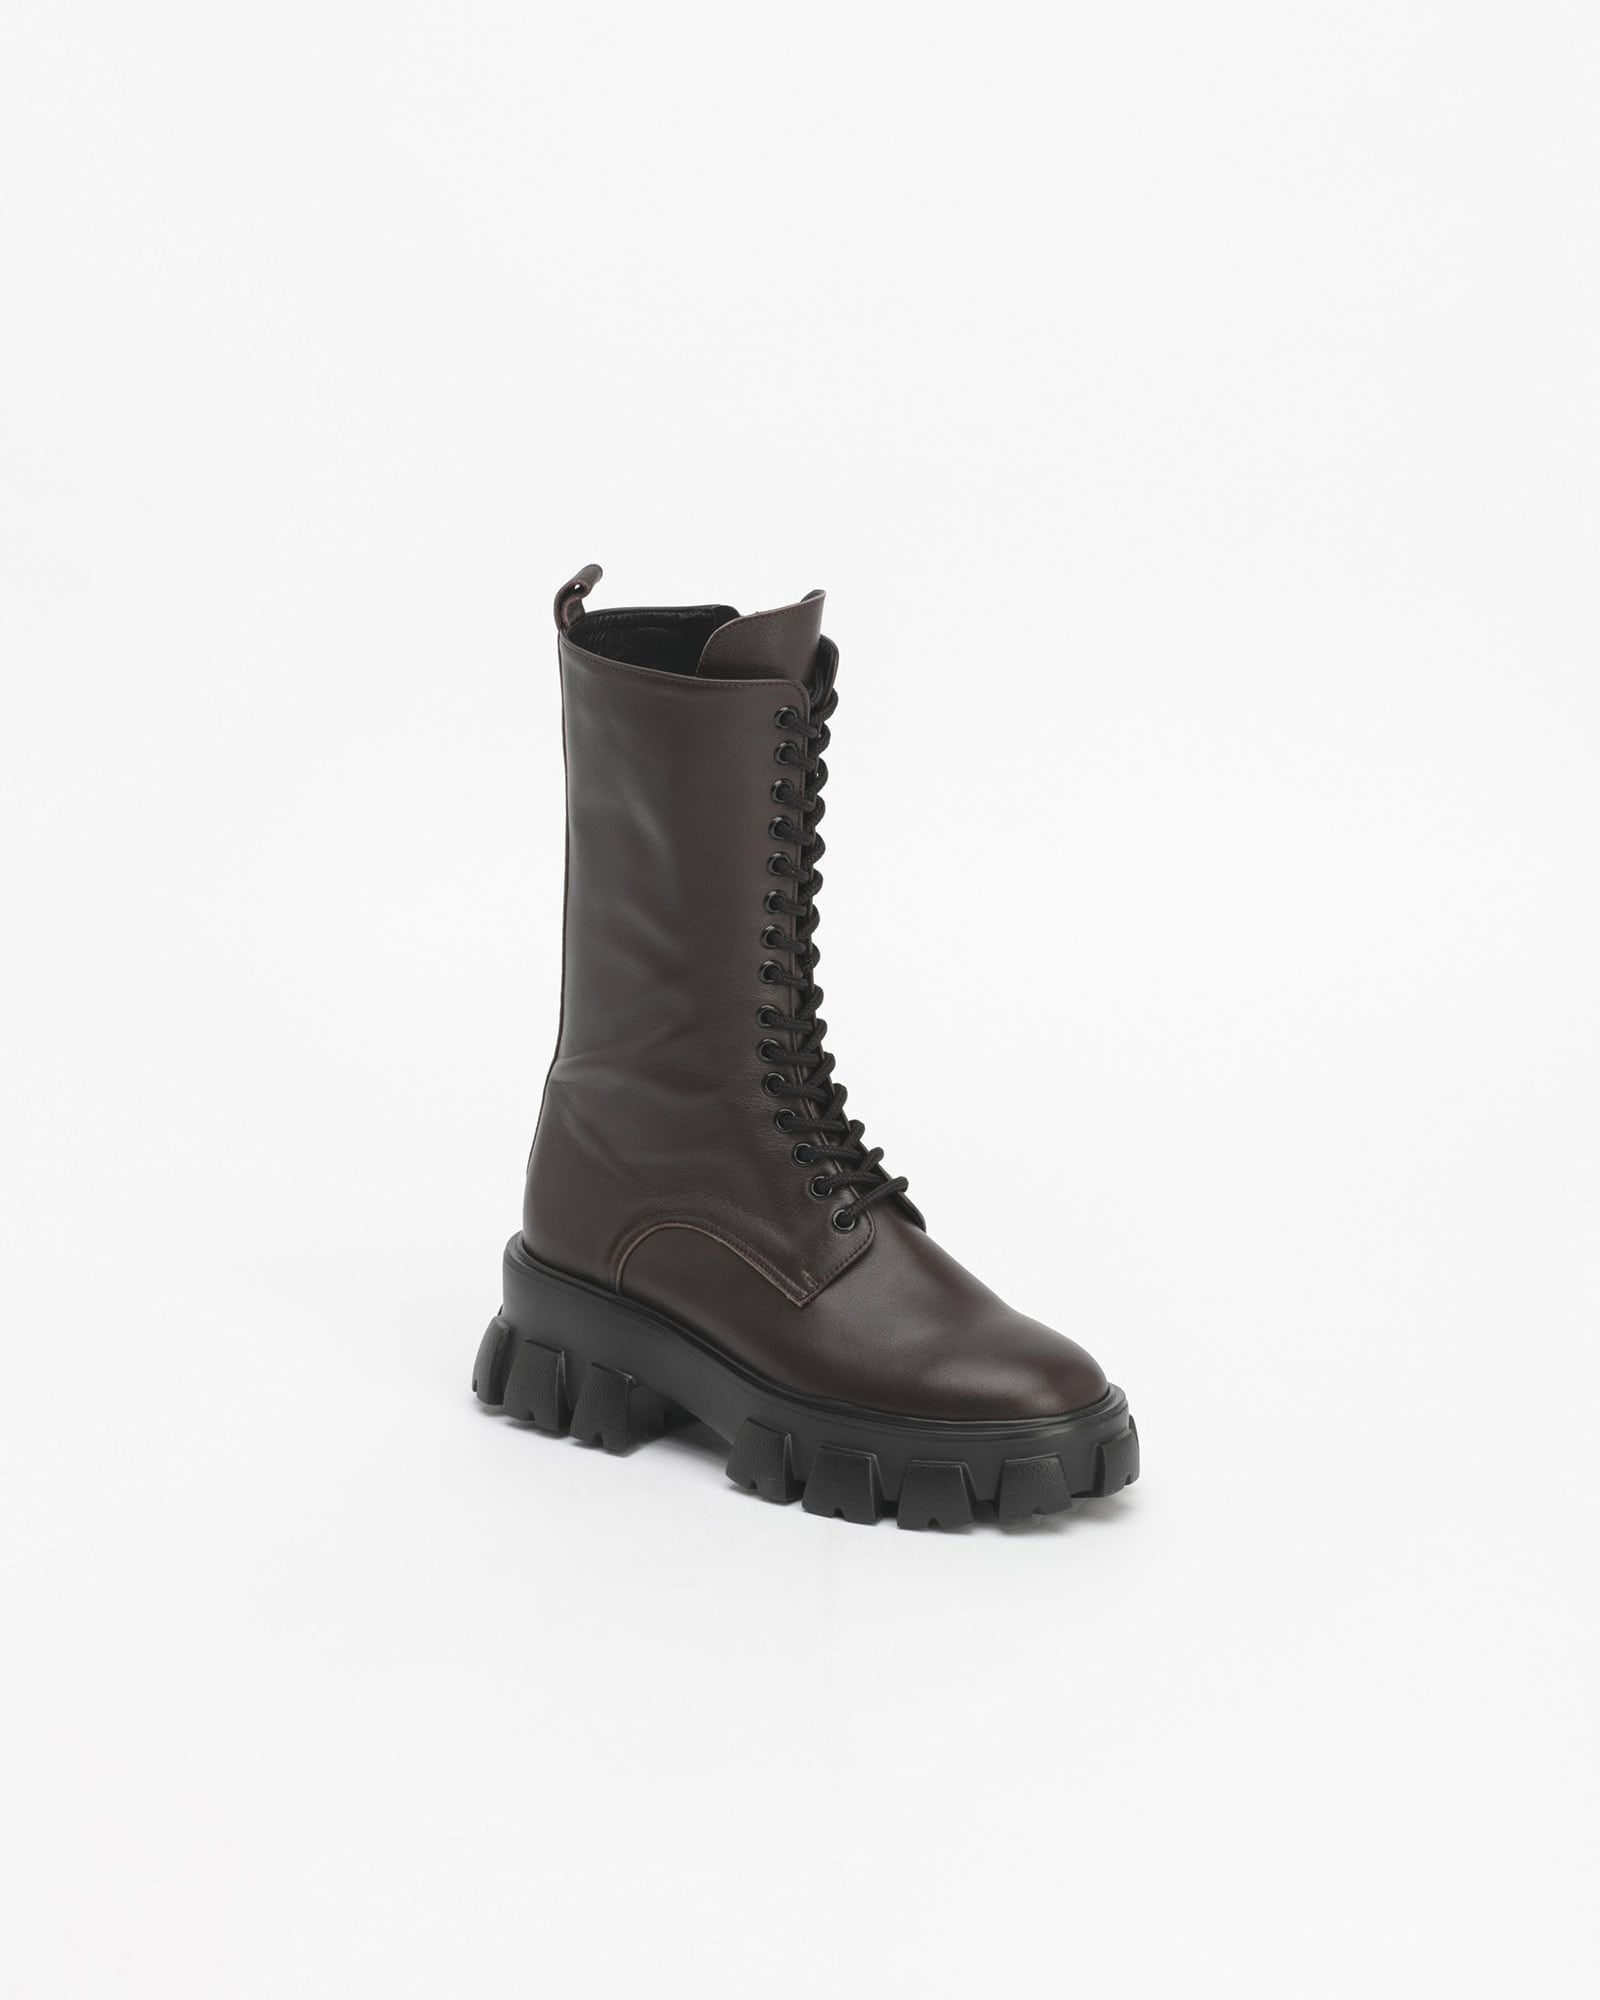 Trigera Lug-sole Combat Boots in Dark Brown